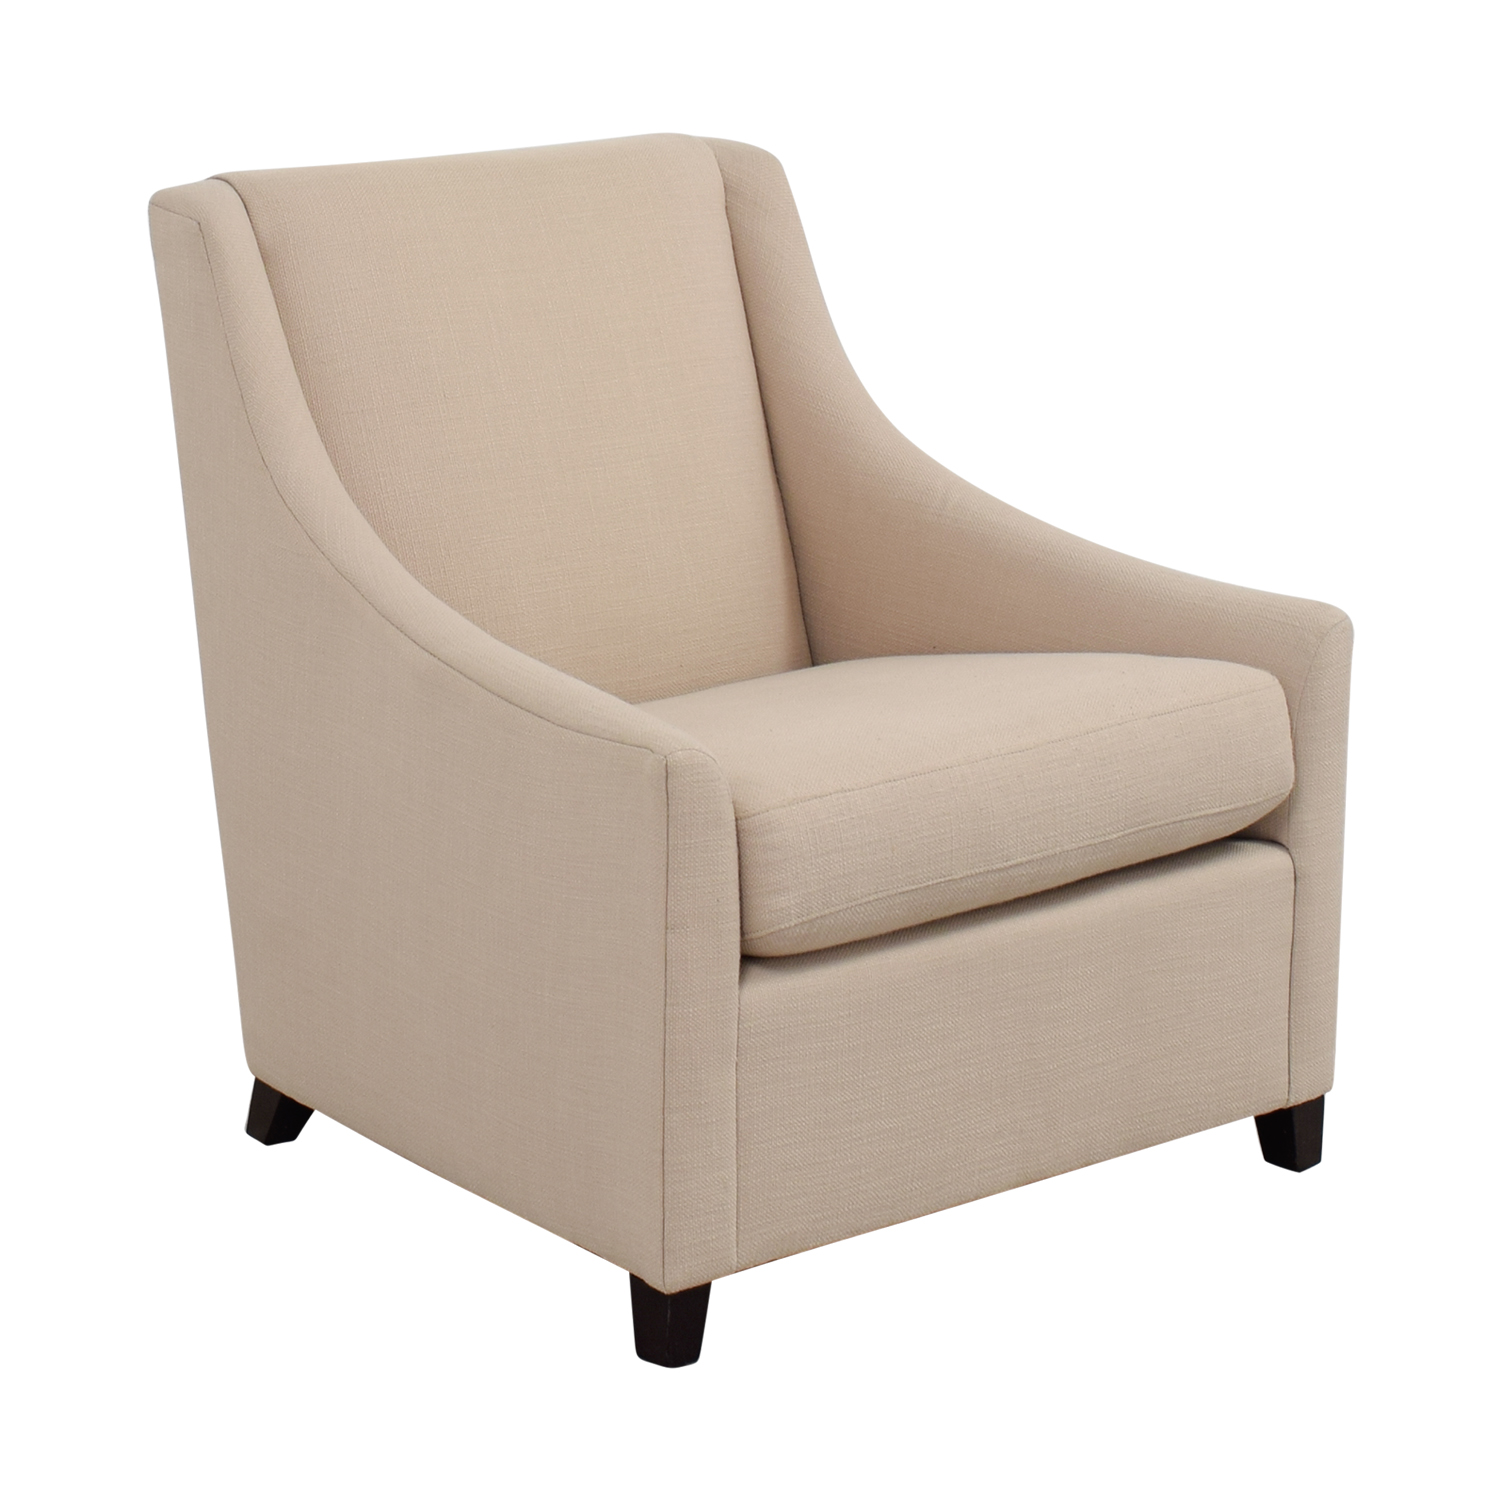 West Elm Chairs: West Elm West Elm Sweep Beige Arm Chair / Chairs